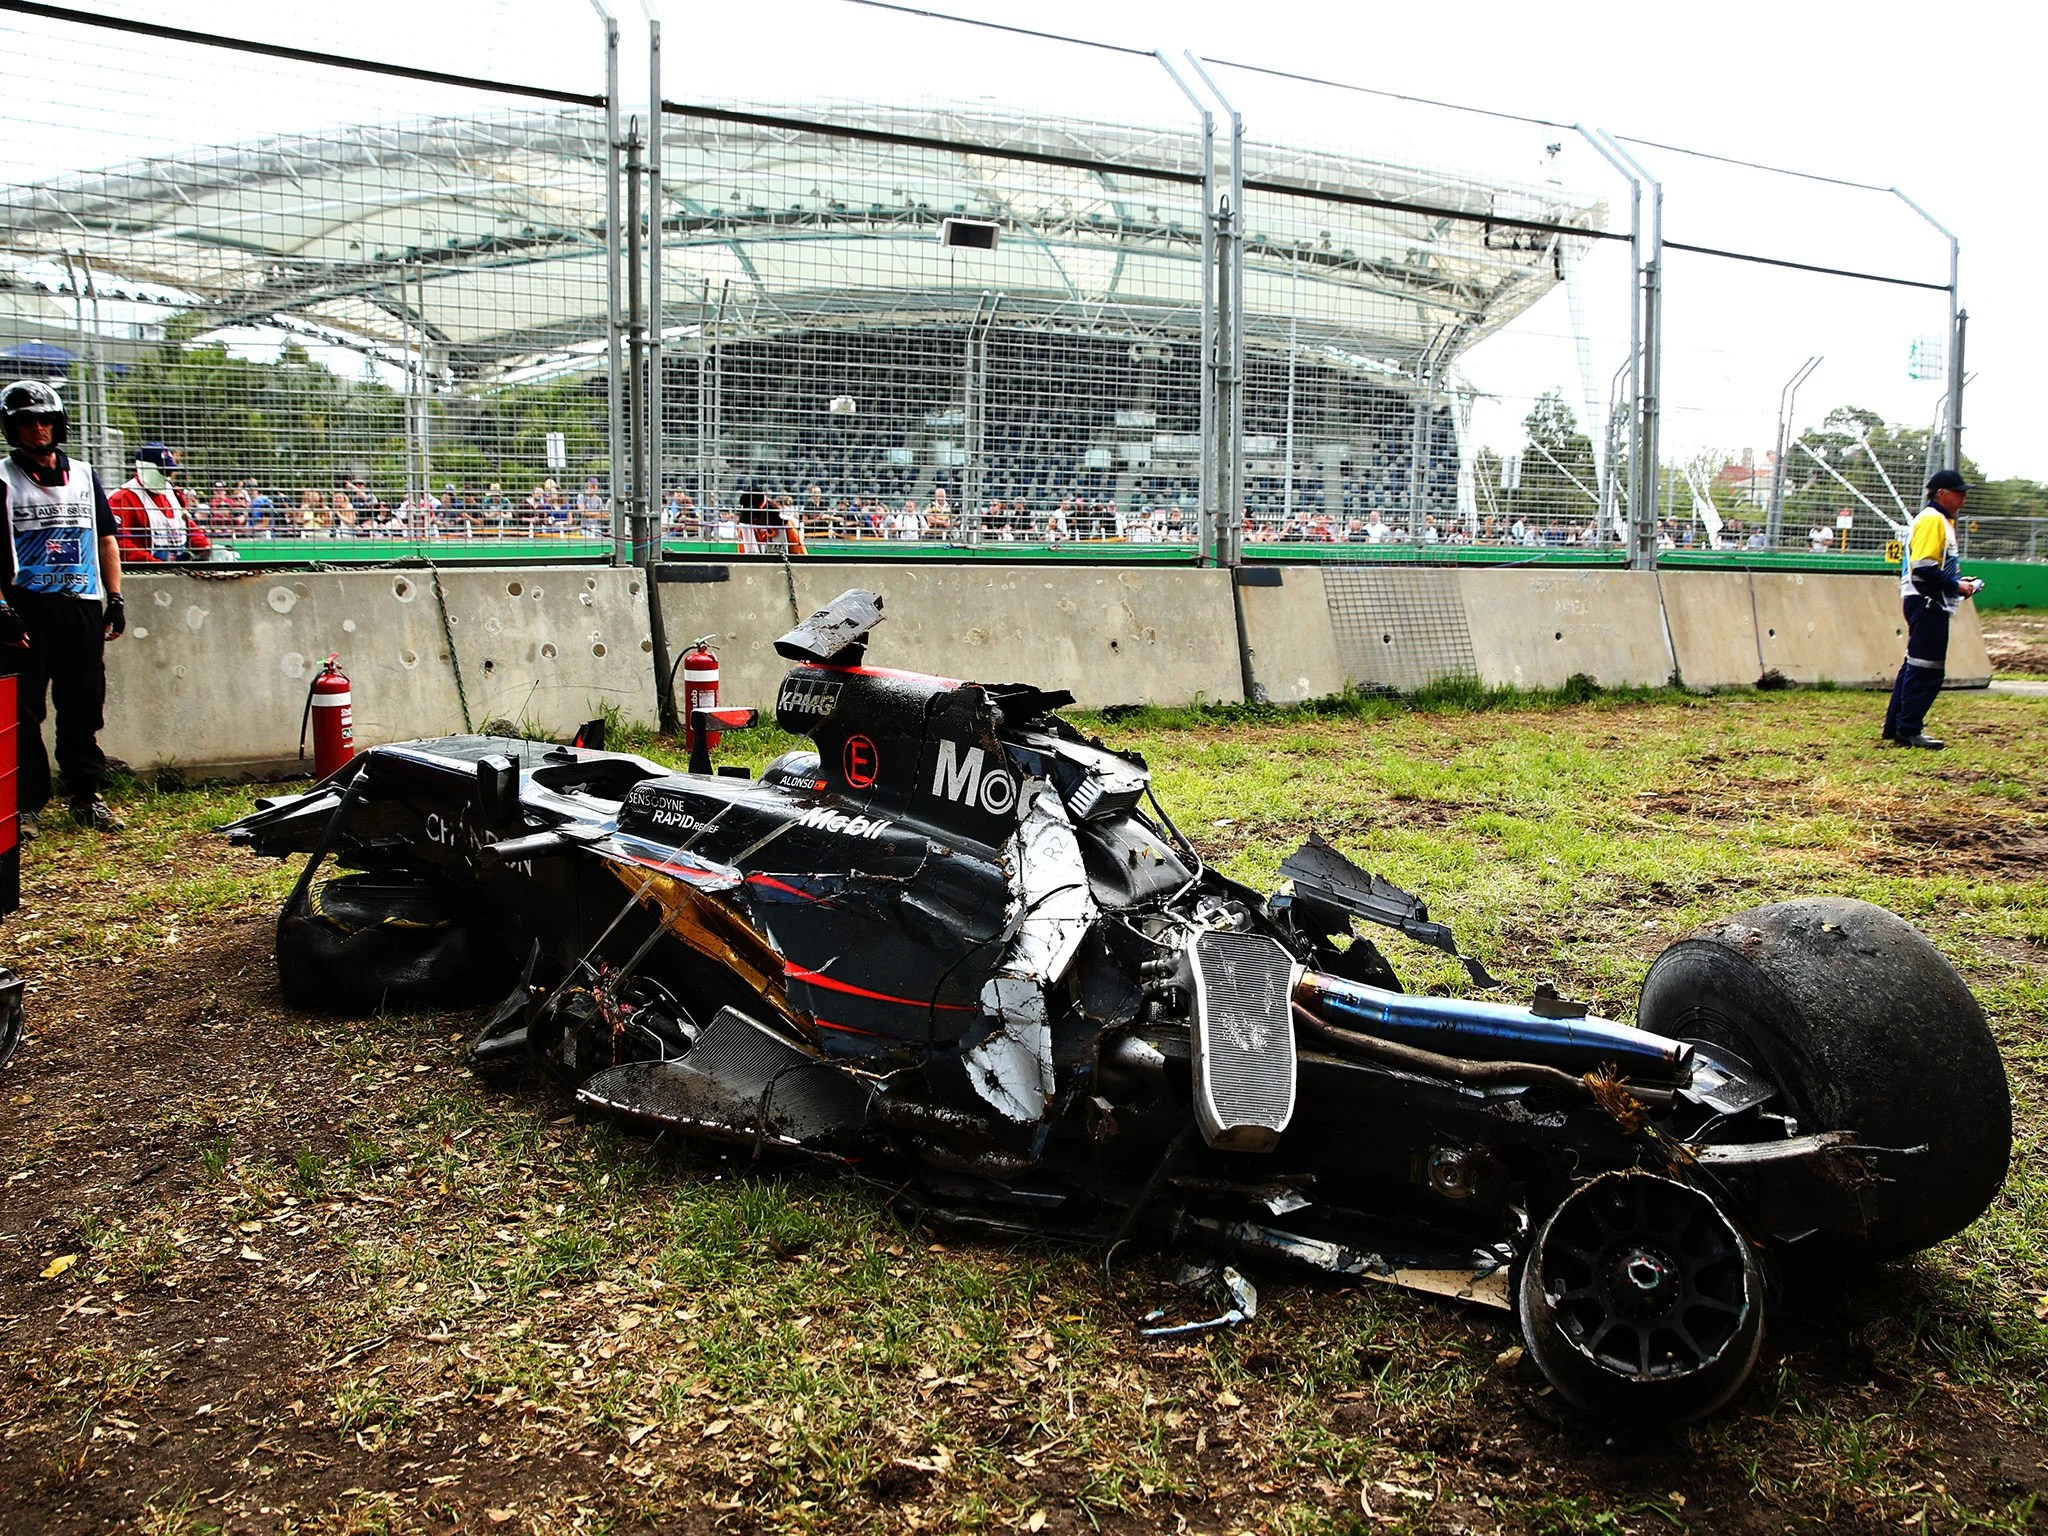 Fernando Alonso F1 Grand Prix Fernando Alonso Crash F1 Driver Admits He S Lucky To Be Alive